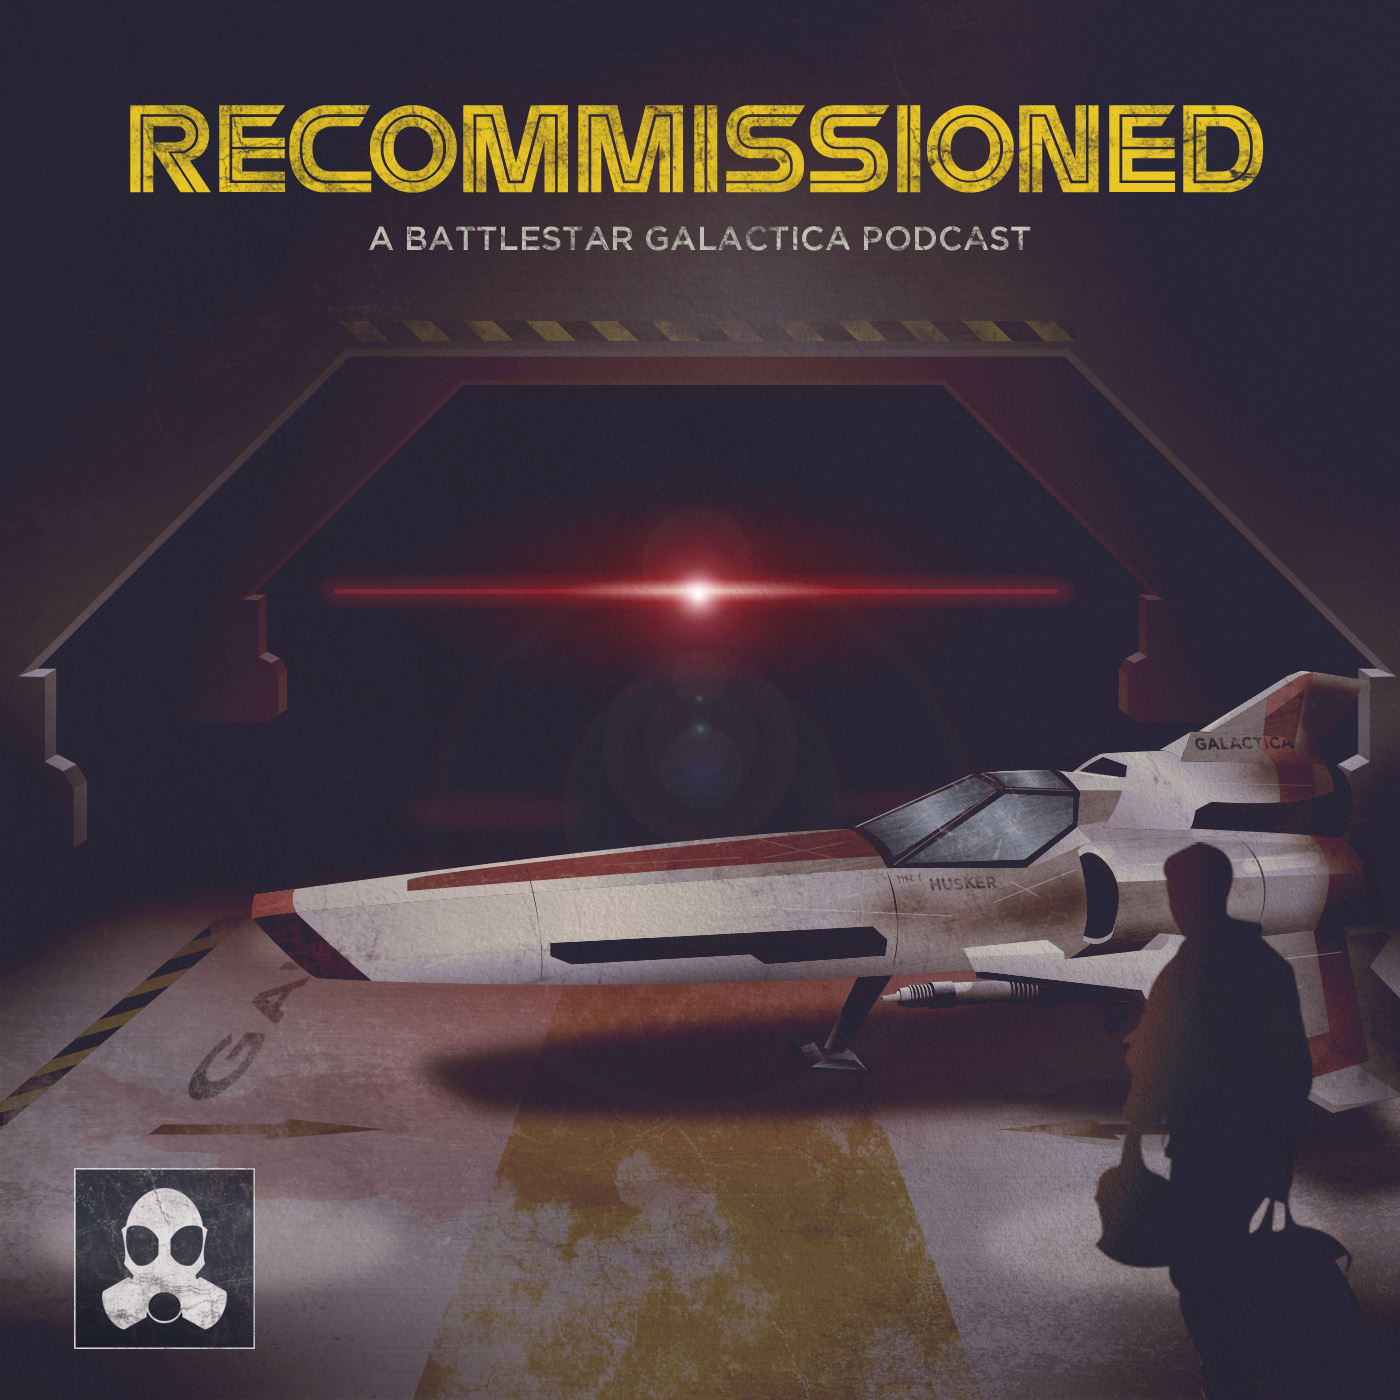 Artwork for podcast Recommissioned: A Battlestar Galactica Podcast